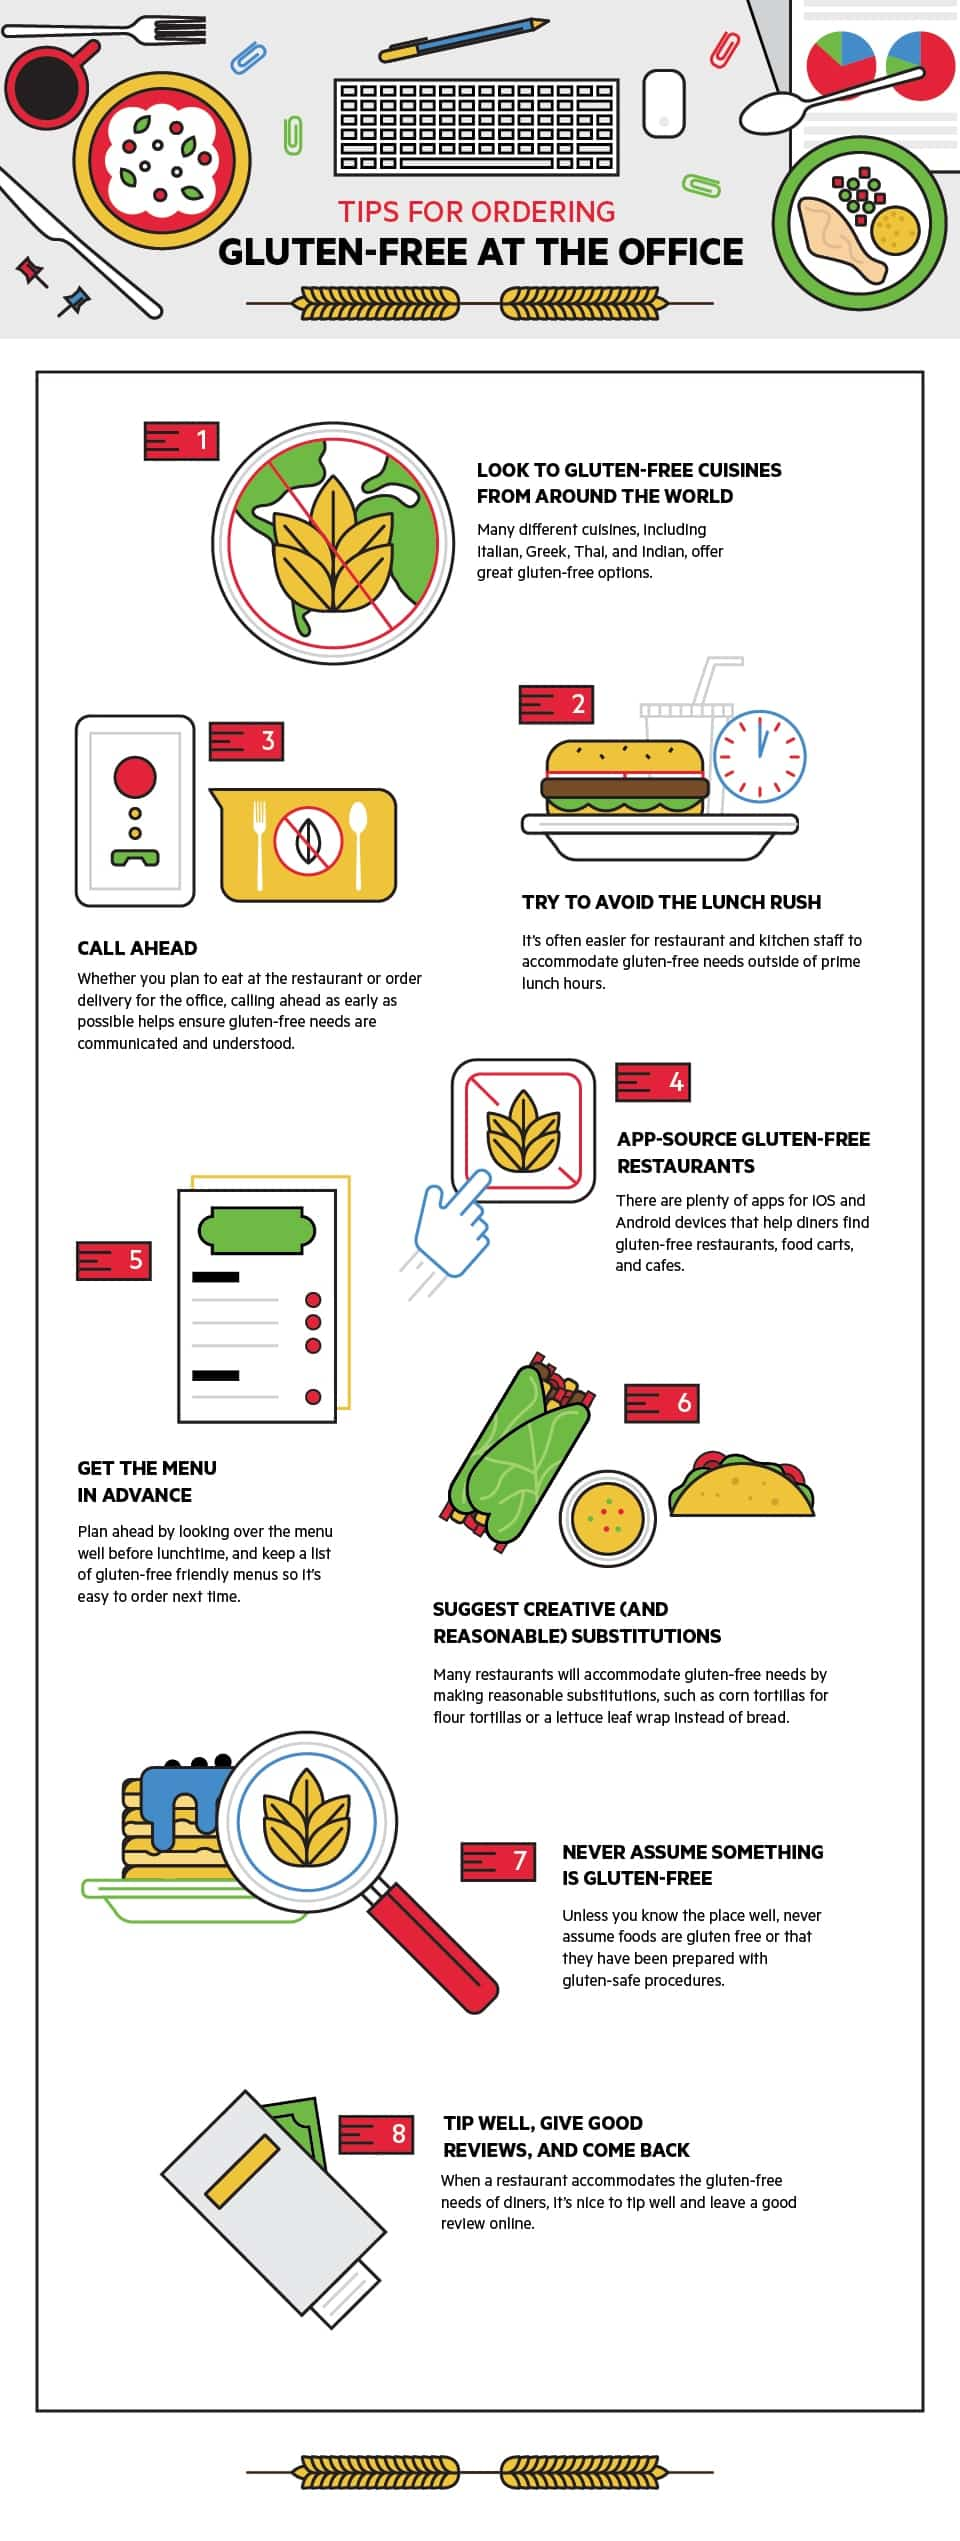 Ordering Gluten-Free at the Office: Tips to Make It Easy - Infographic